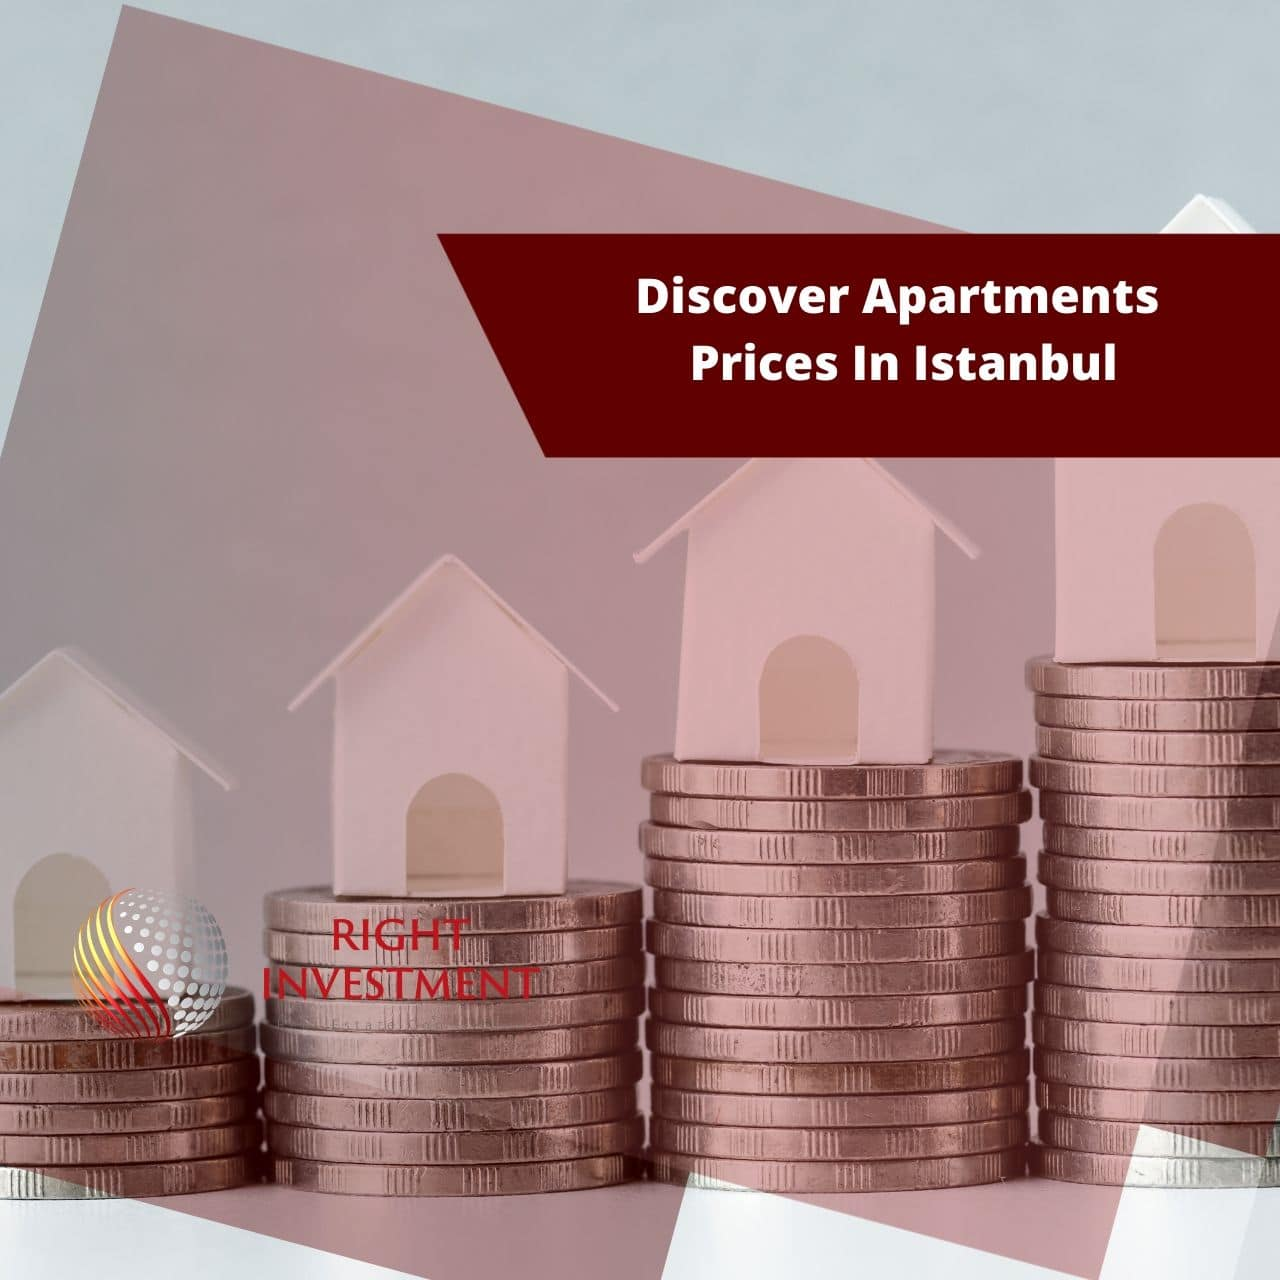 Discover apartments prices in Istanbul